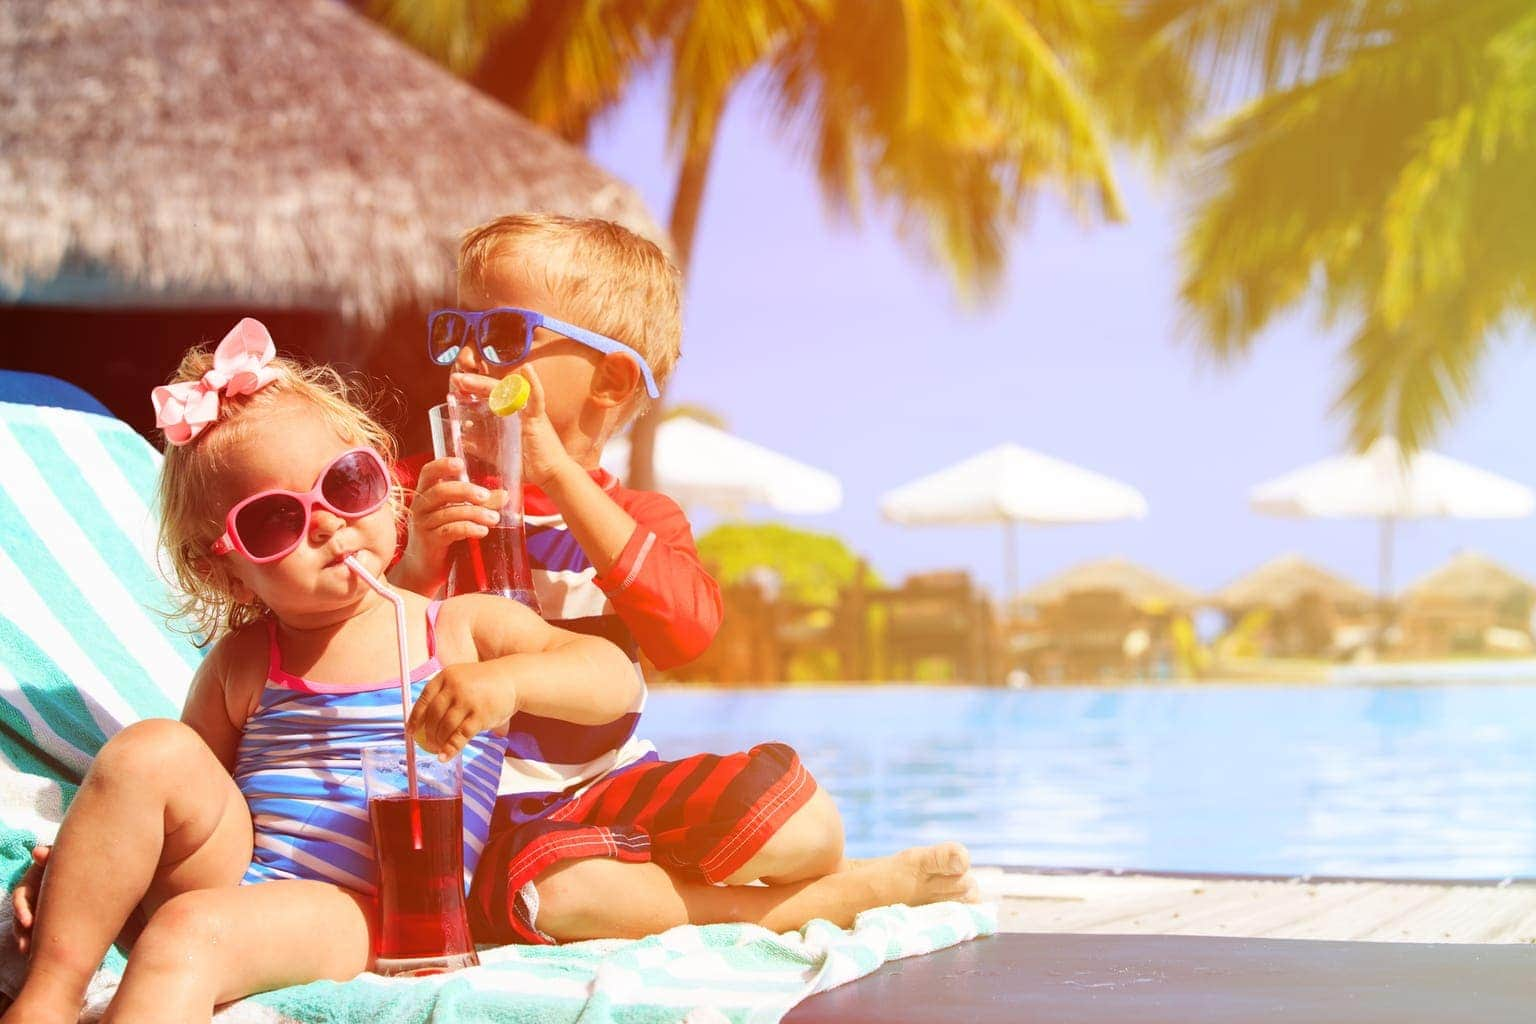 Pre-School Years are the Best Years to Travel to Exotic Destinations with Kids www.minitravellers.co.uk